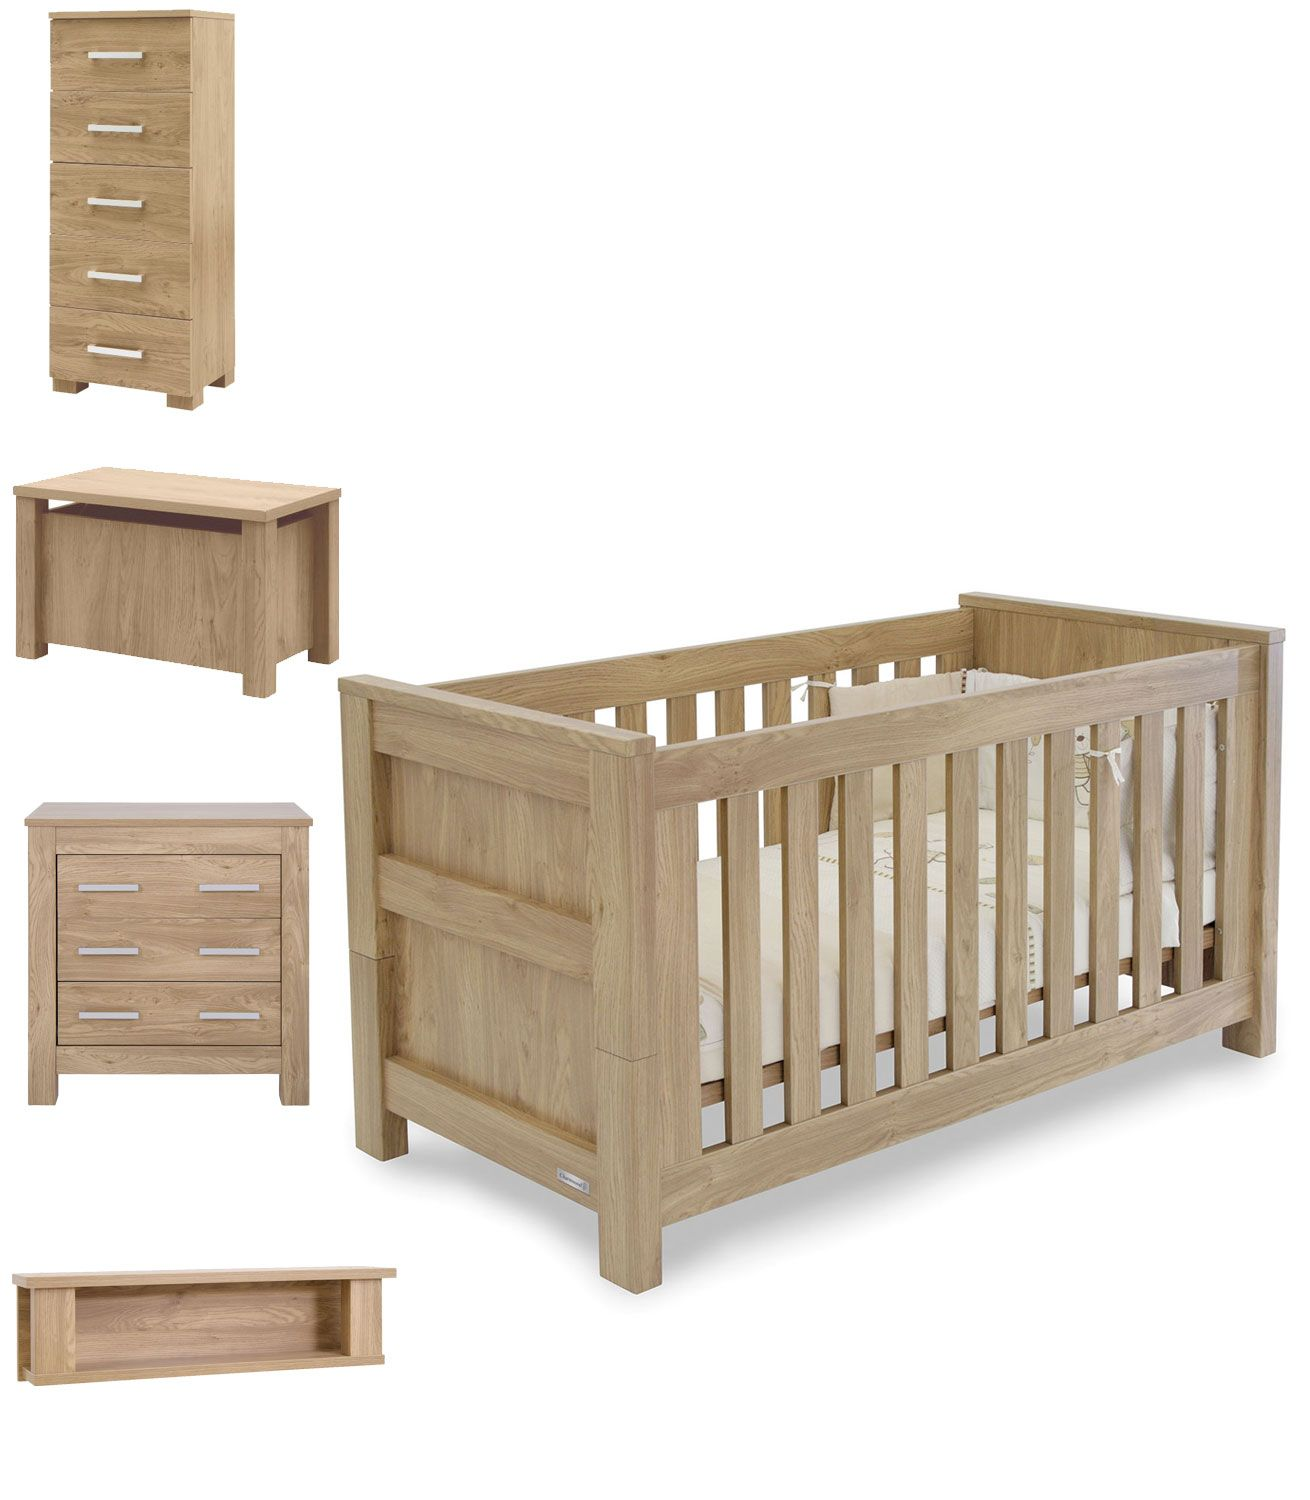 Buy your Babystyle Bordeaux Roomset from Kiddicare